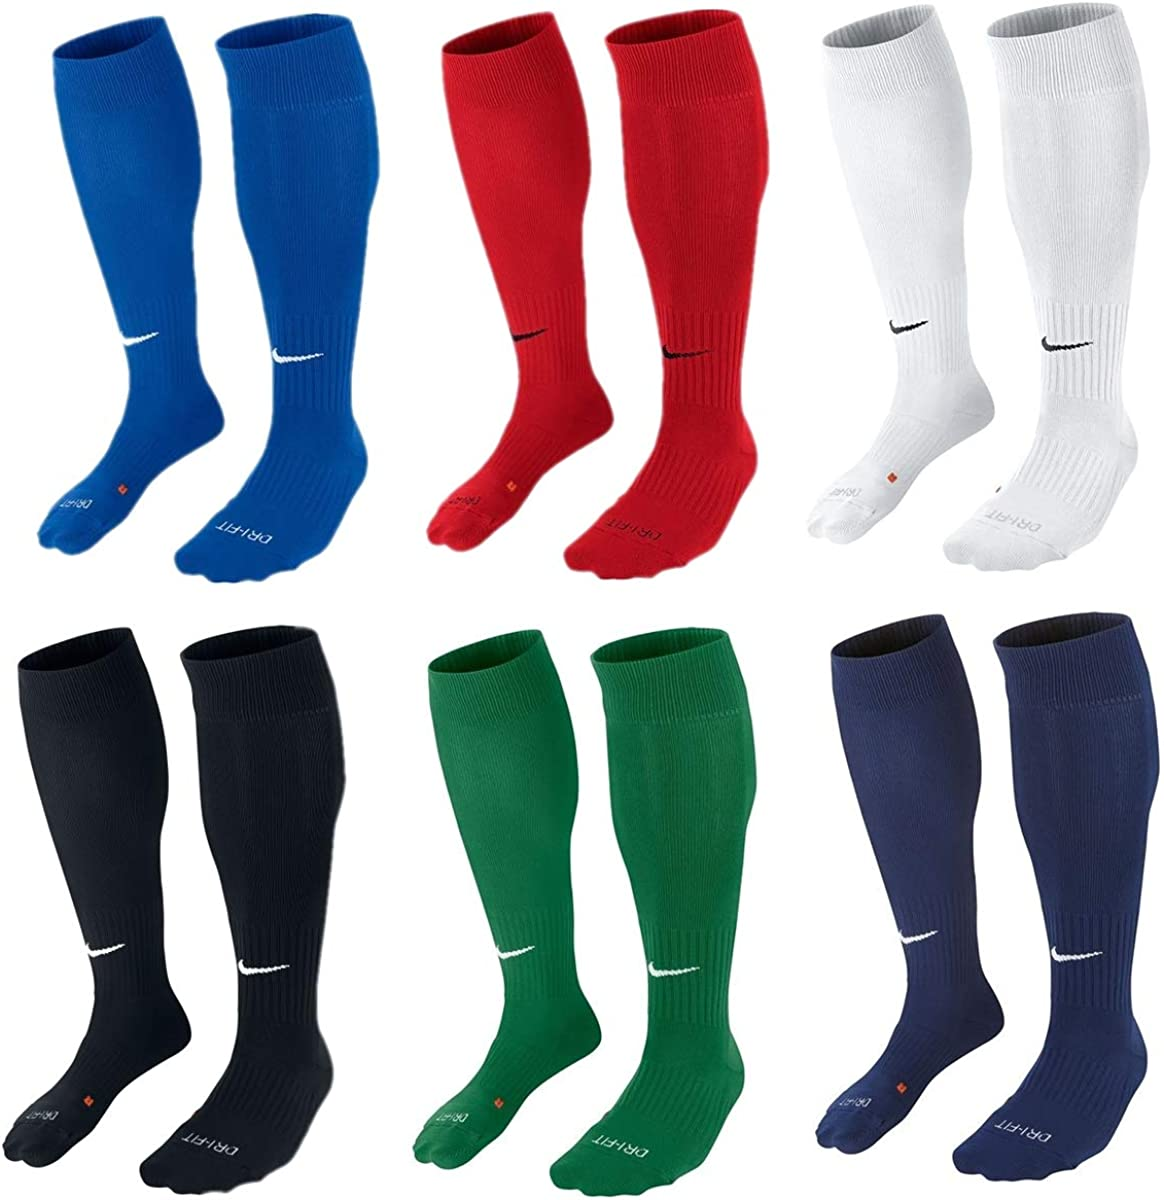 Unisex Nike Classic II Cushion Over-the-Calf Football Sock